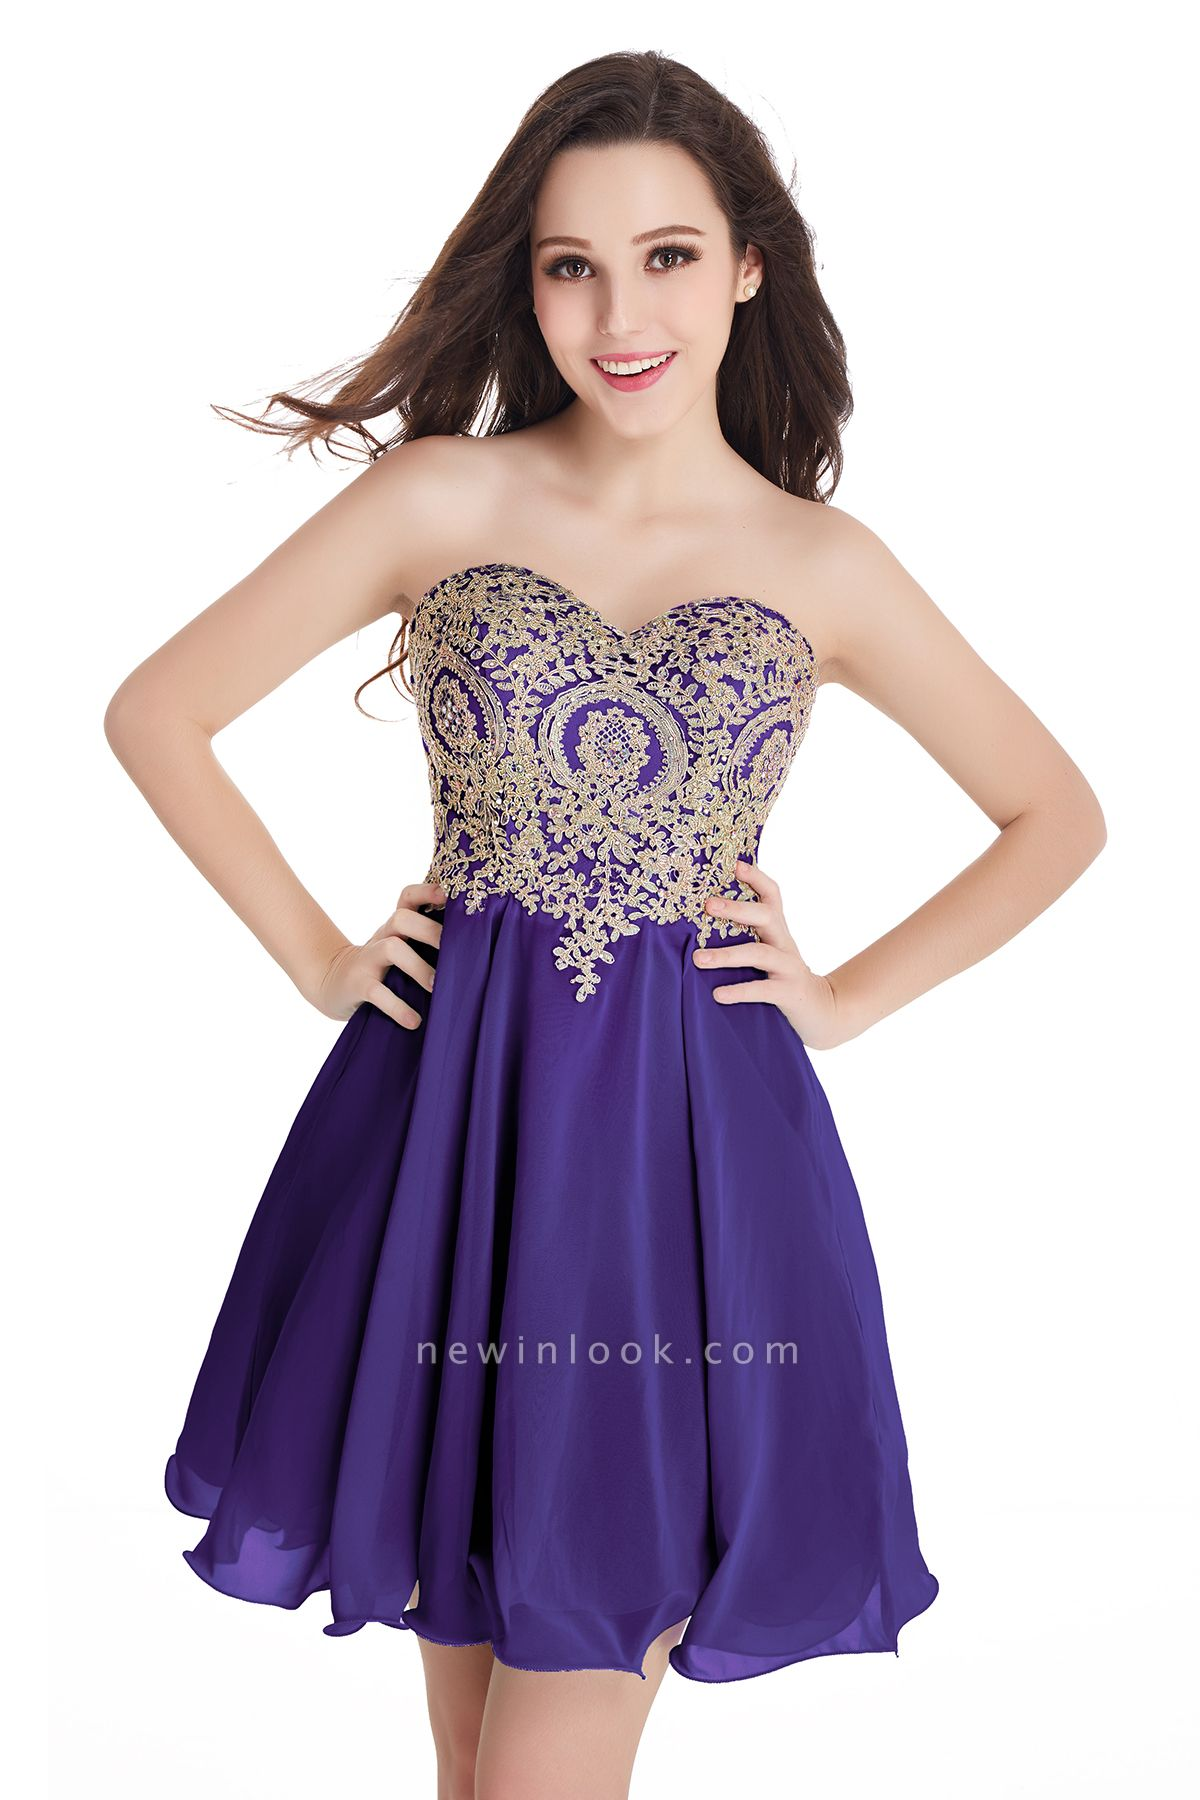 CYNTHIA | Quinceanera Strapless Short Chiffon Dama Dresses with Beadings